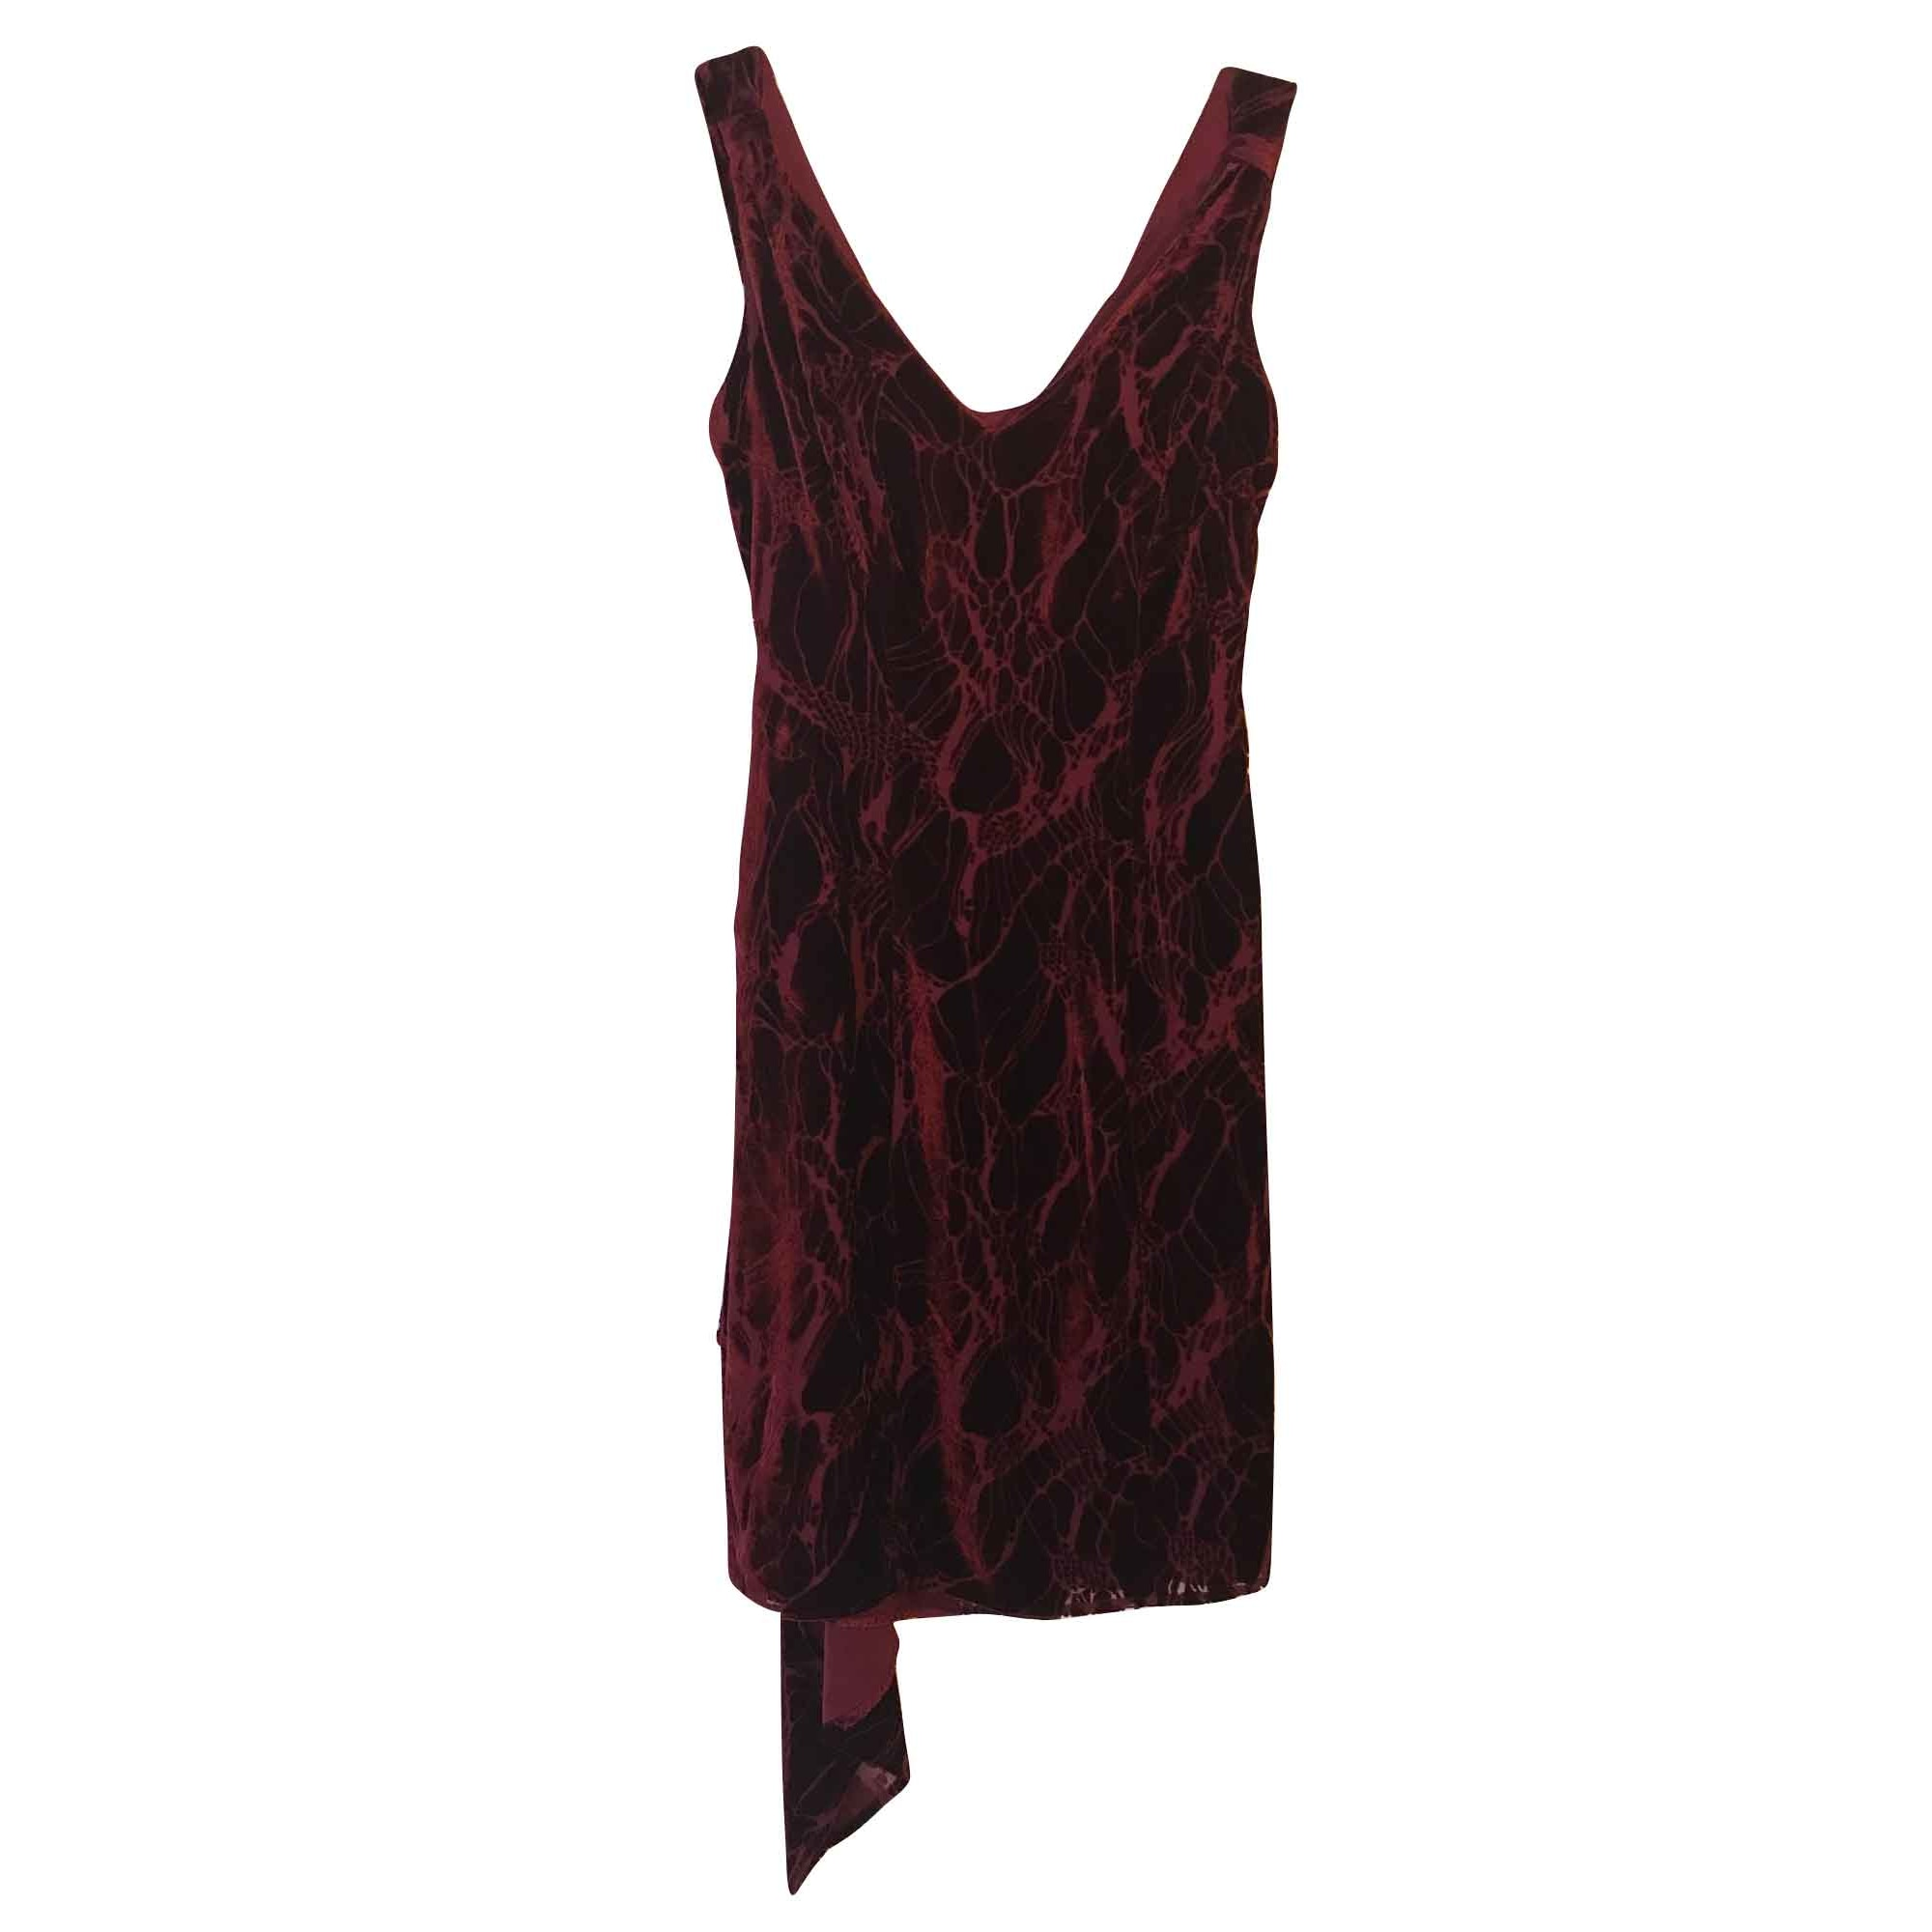 Robe courte THIERRY MUGLER Rouge, bordeaux